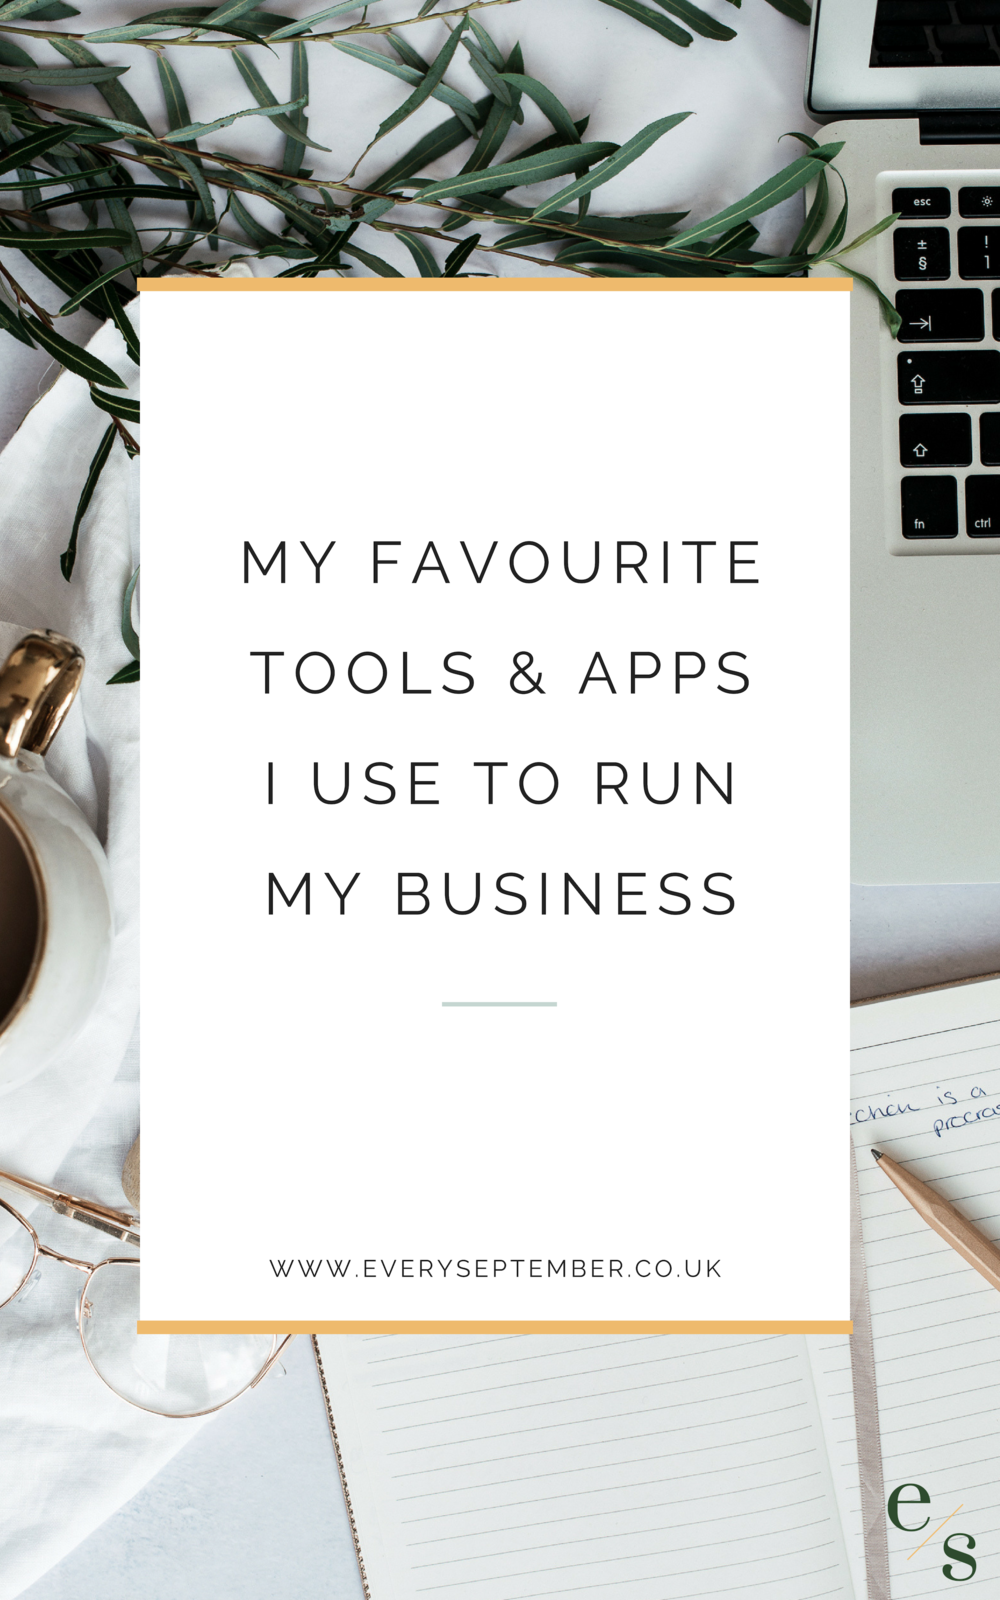 My favourite tools and apps I use to run my business